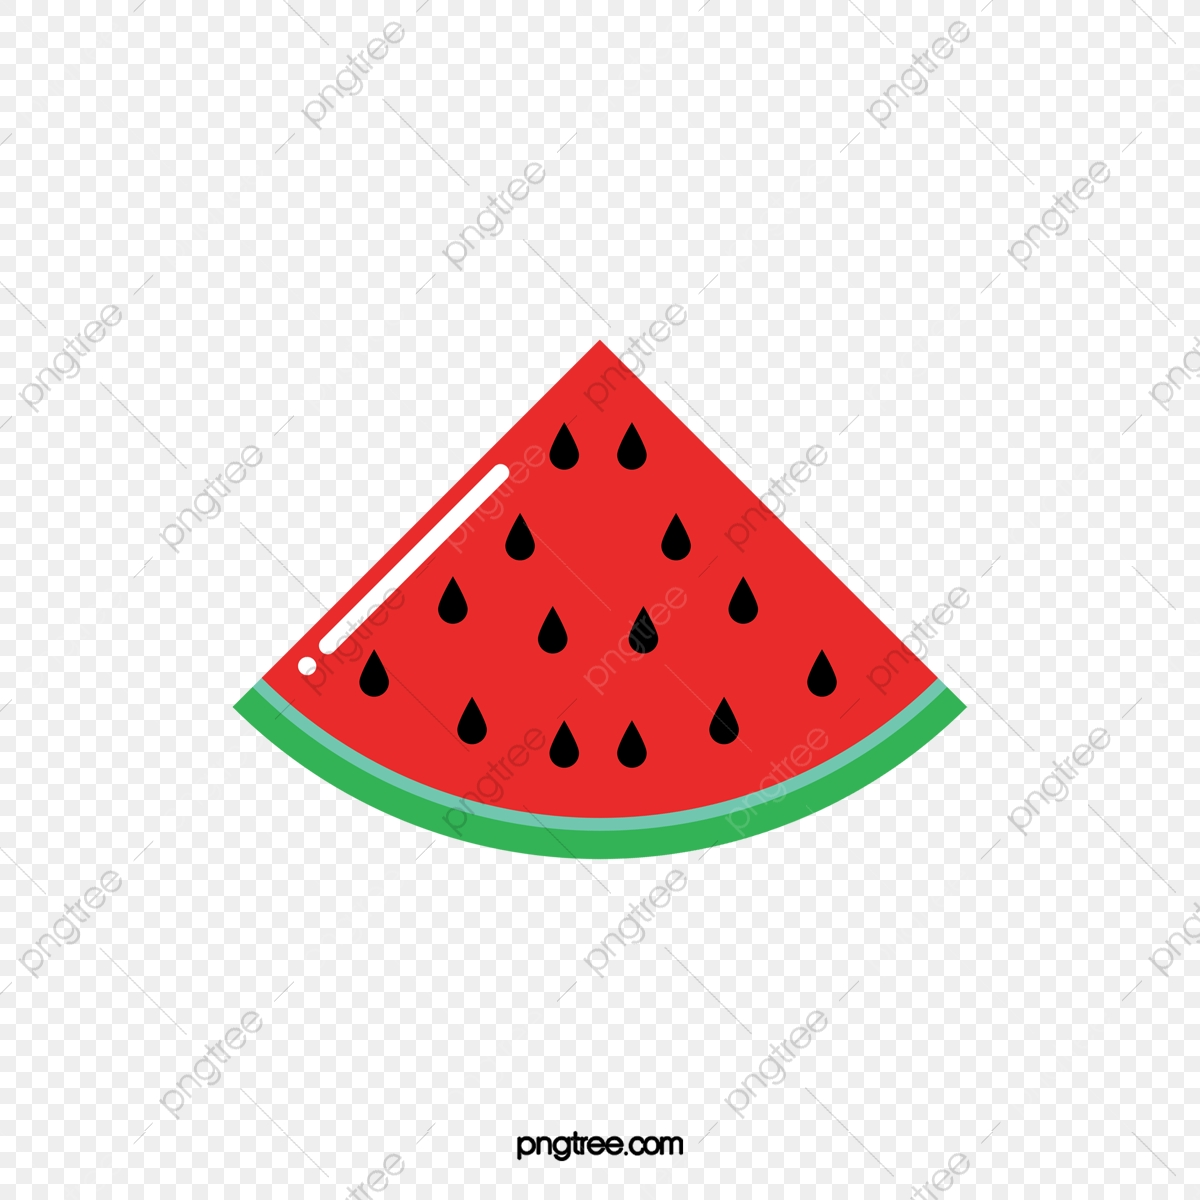 Watermelon Clipart Png Images Vector And Psd Files Free Download On Pngtree